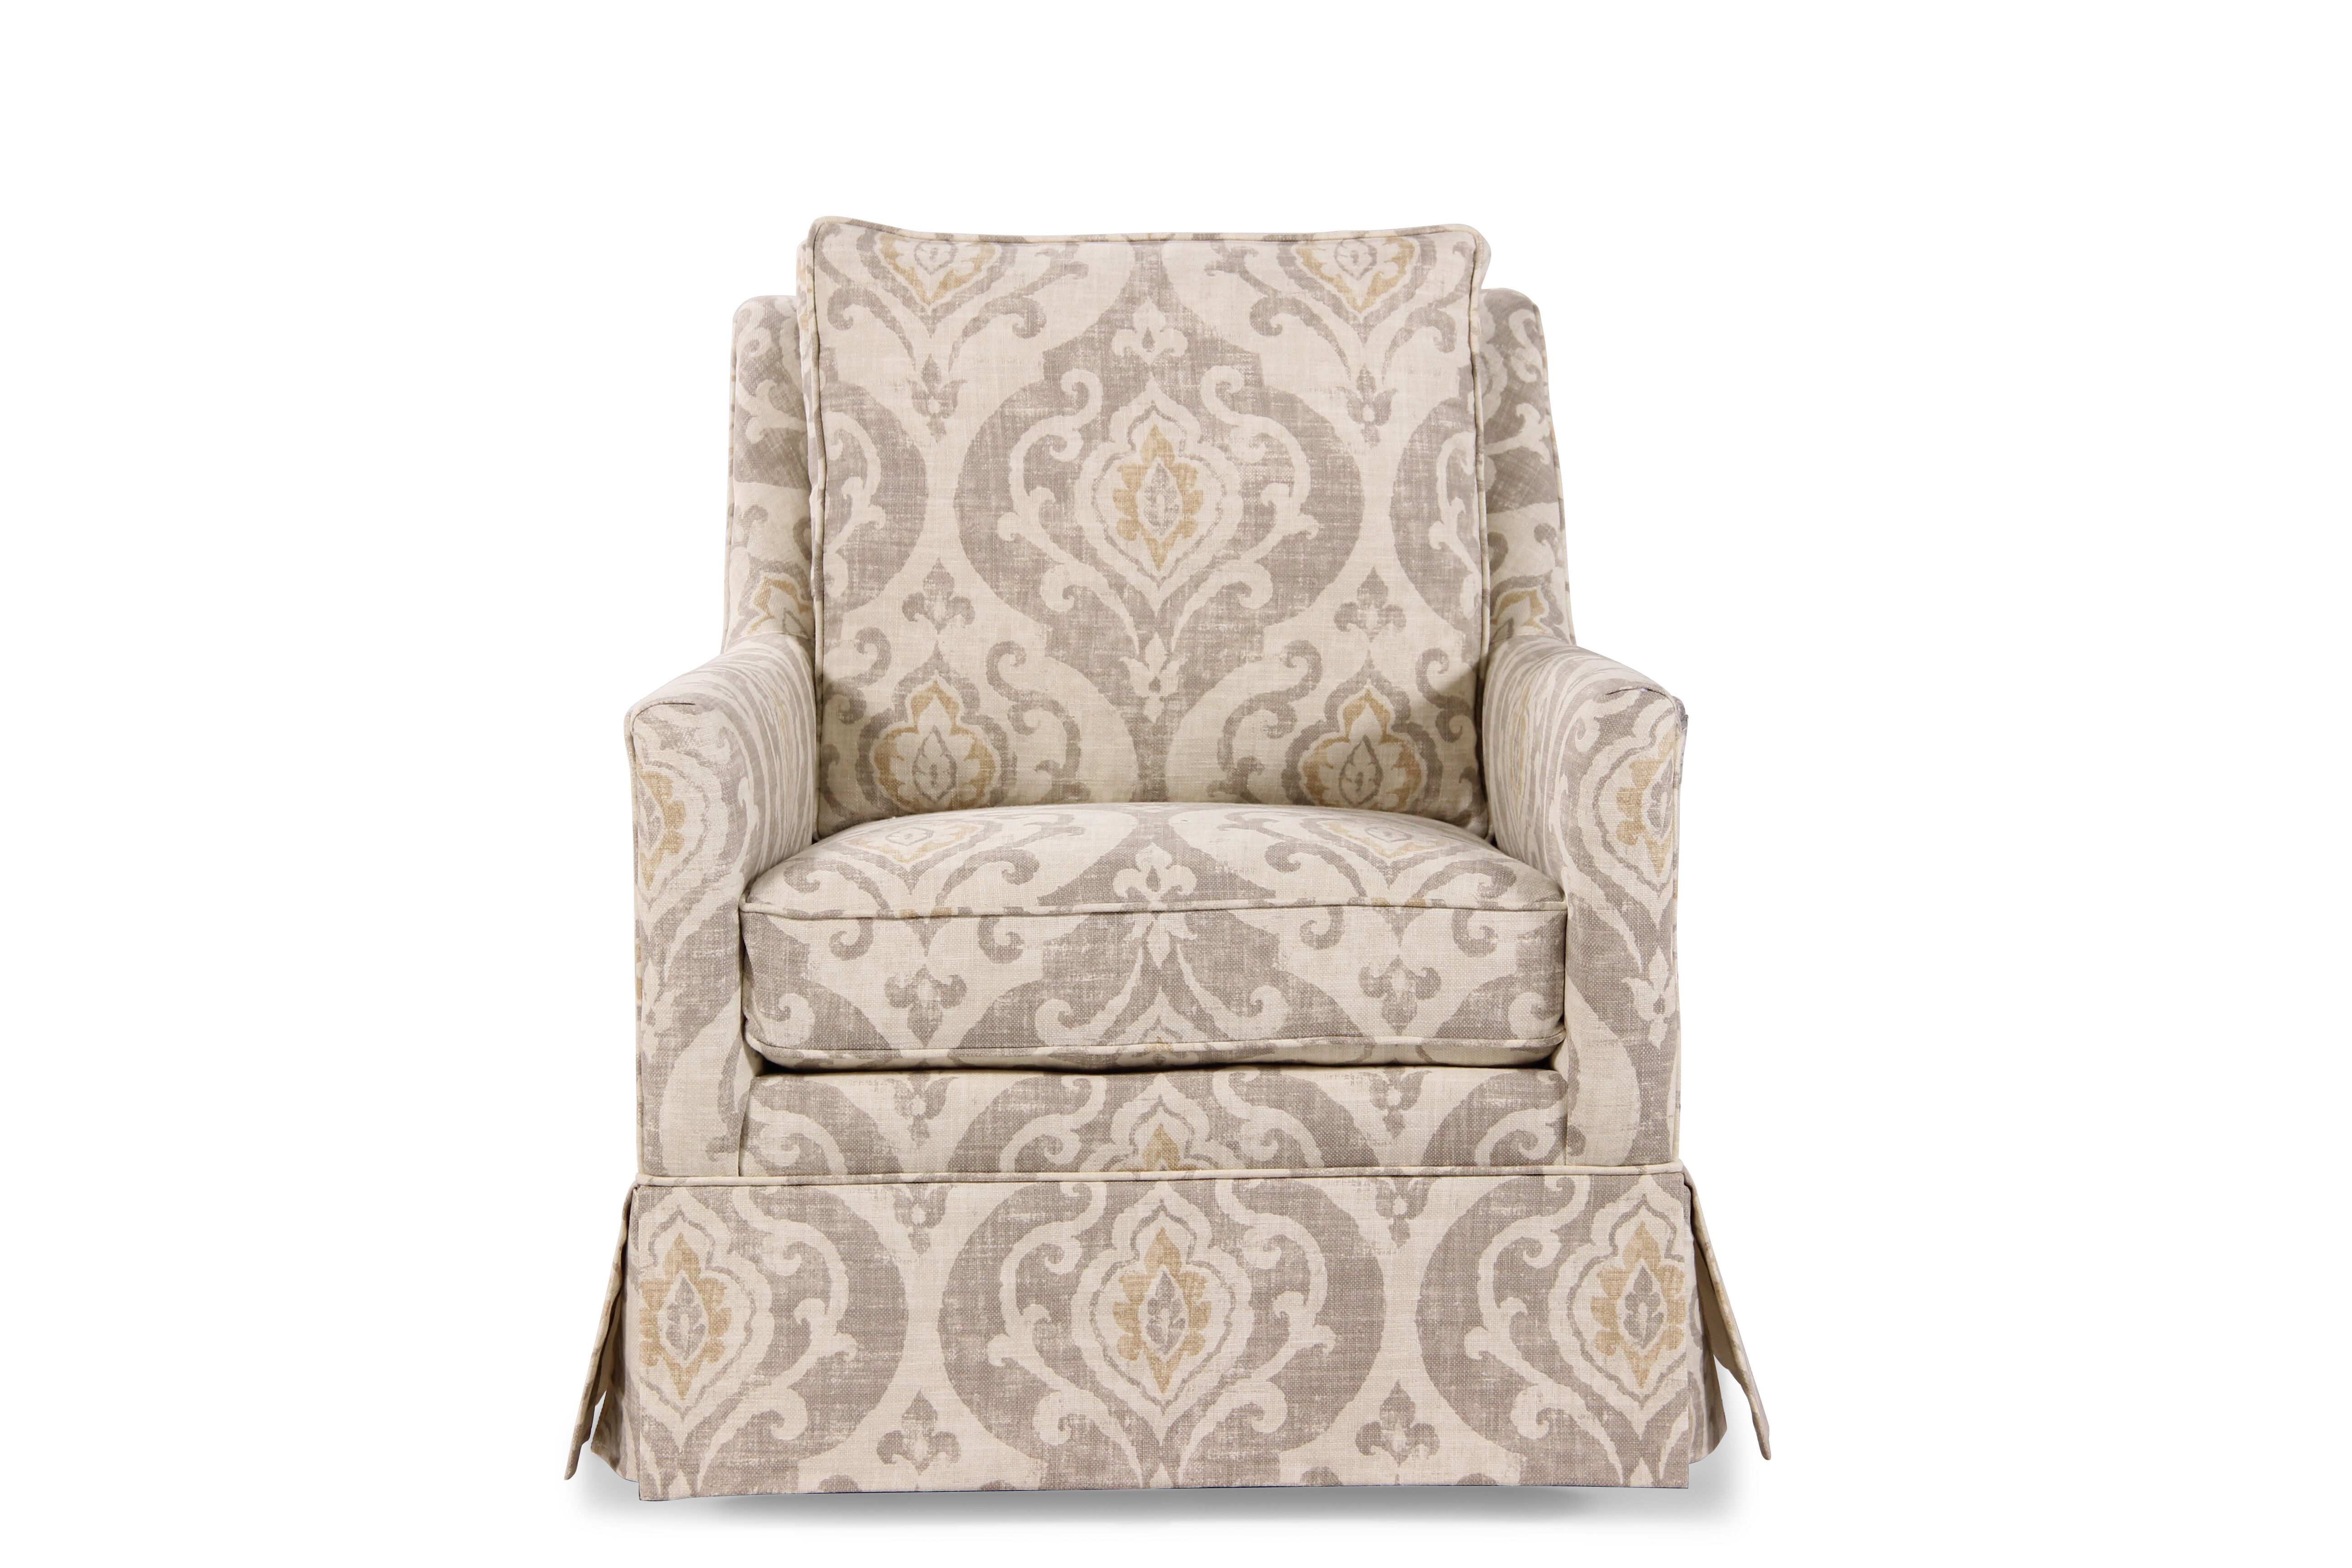 Paisley Patterned Transitional 295 Swivel Chair In Cream